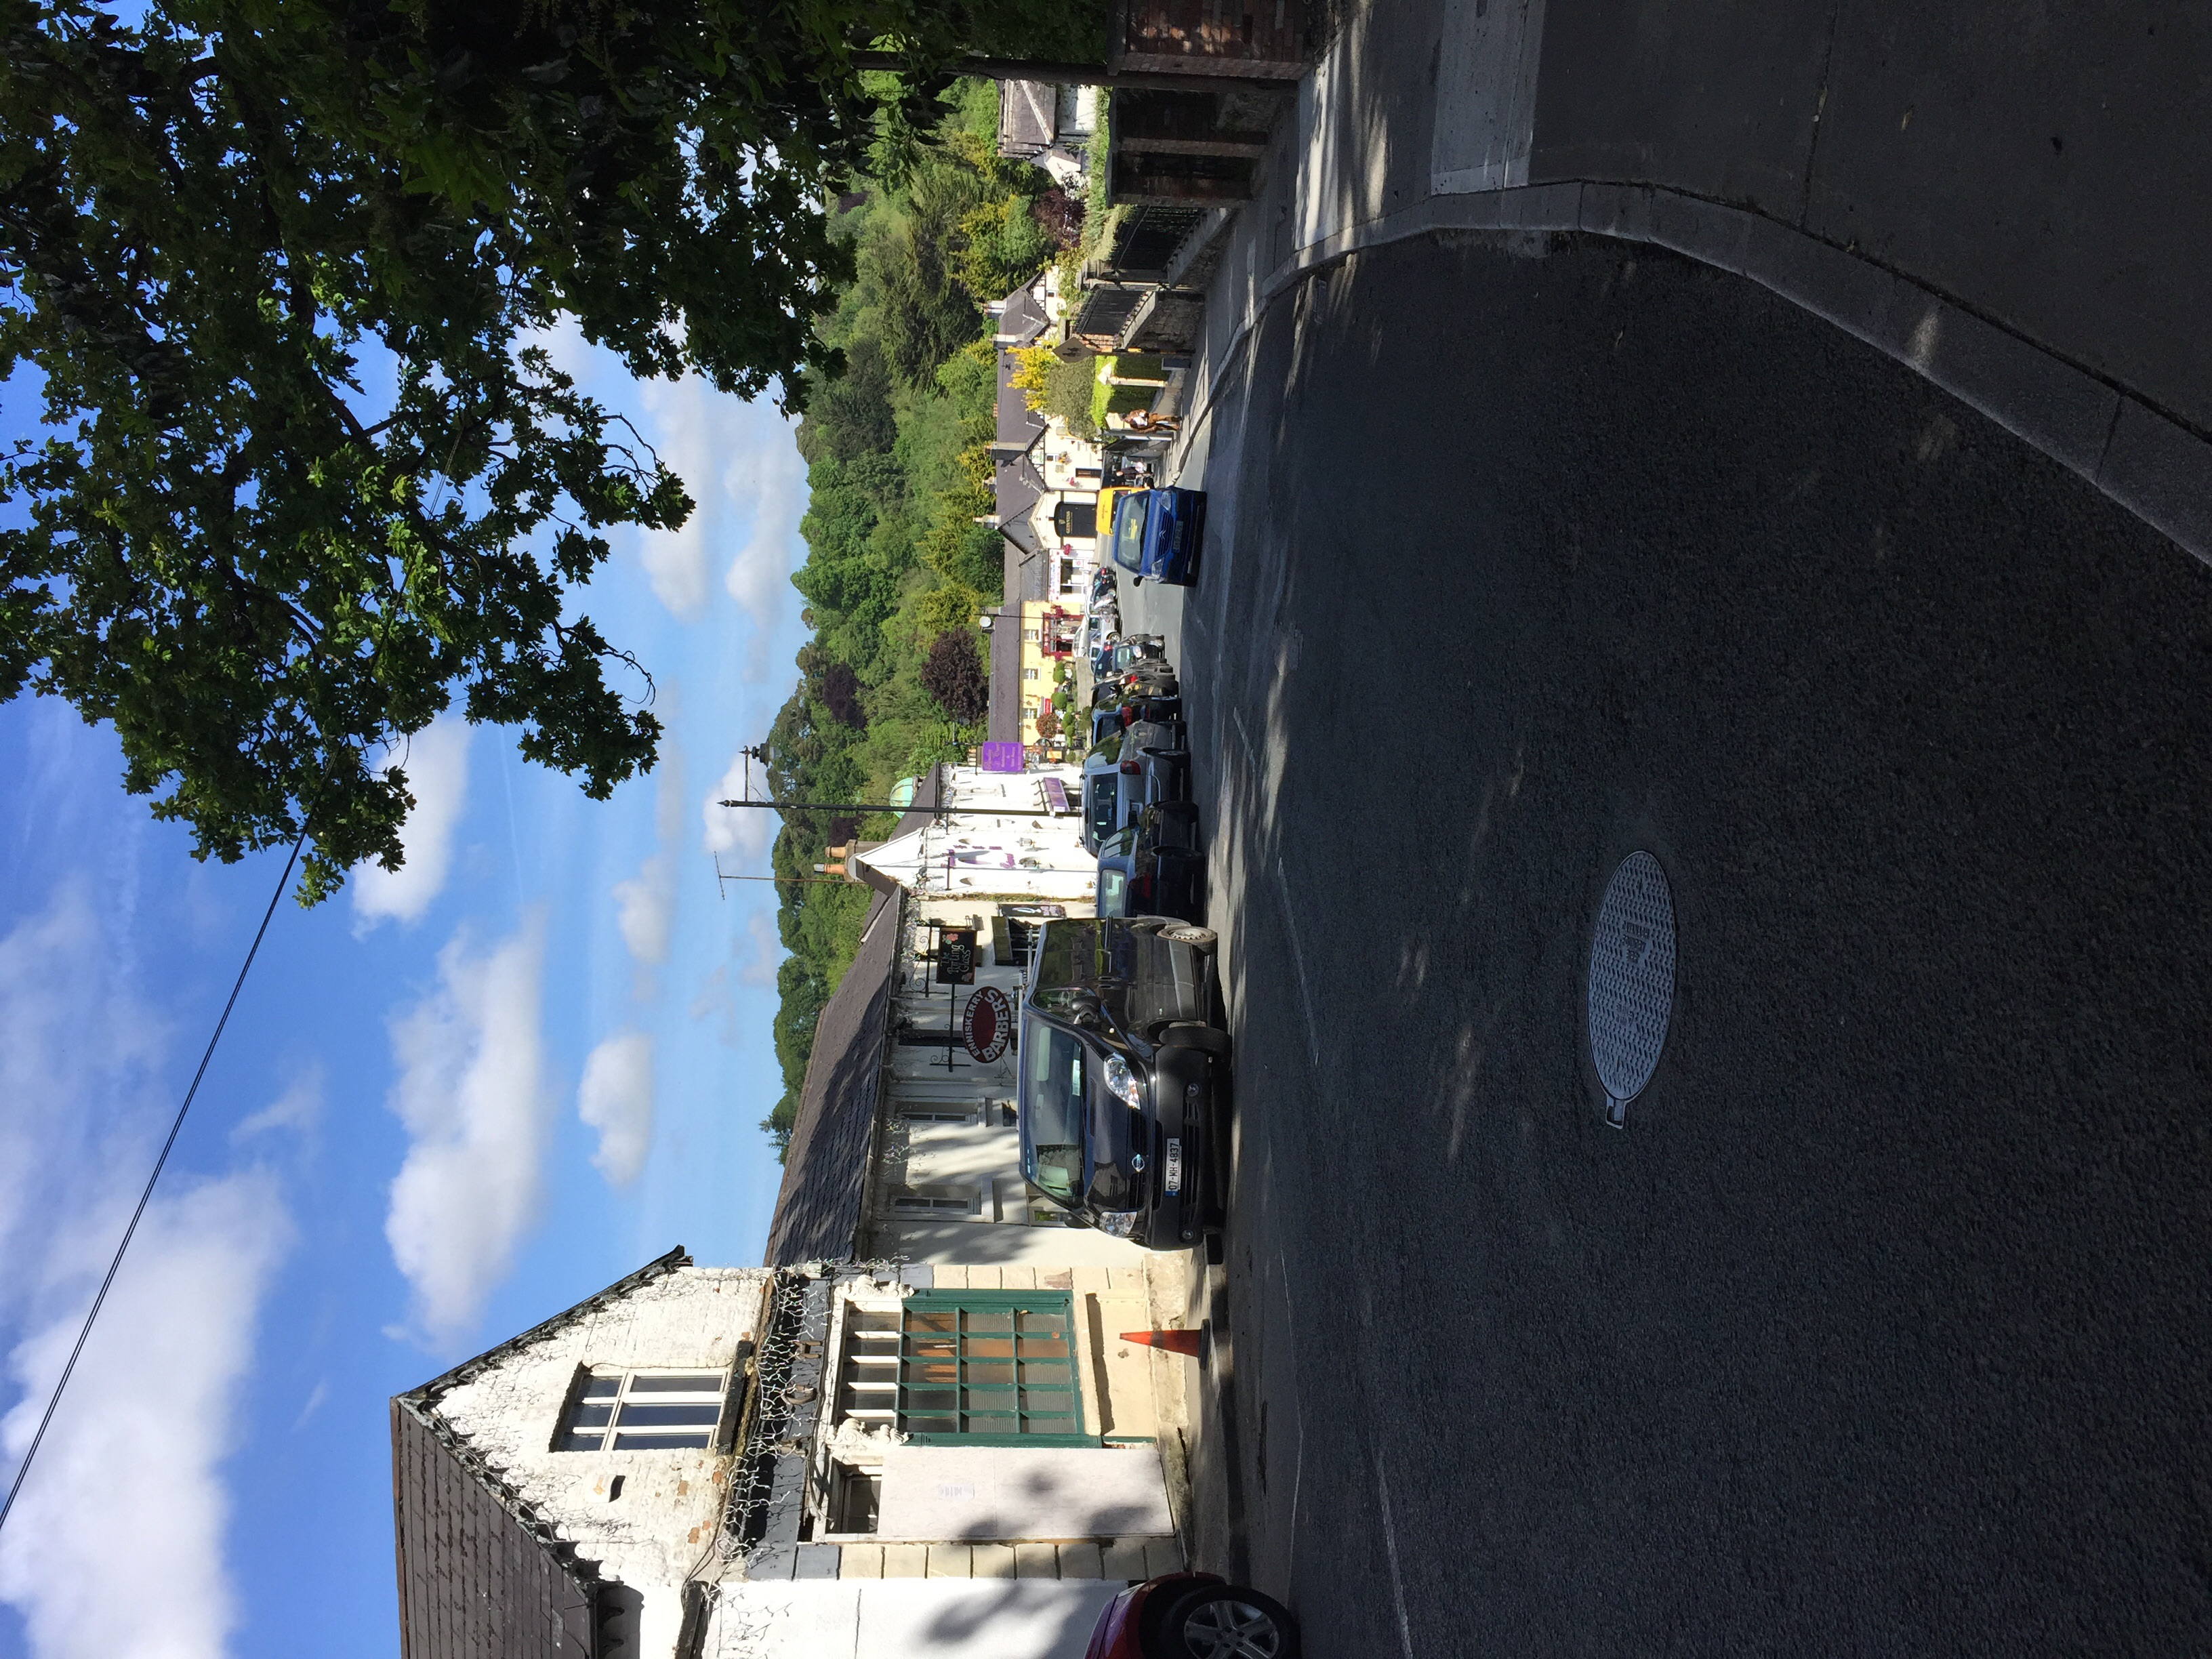 The town of Enniskerry.